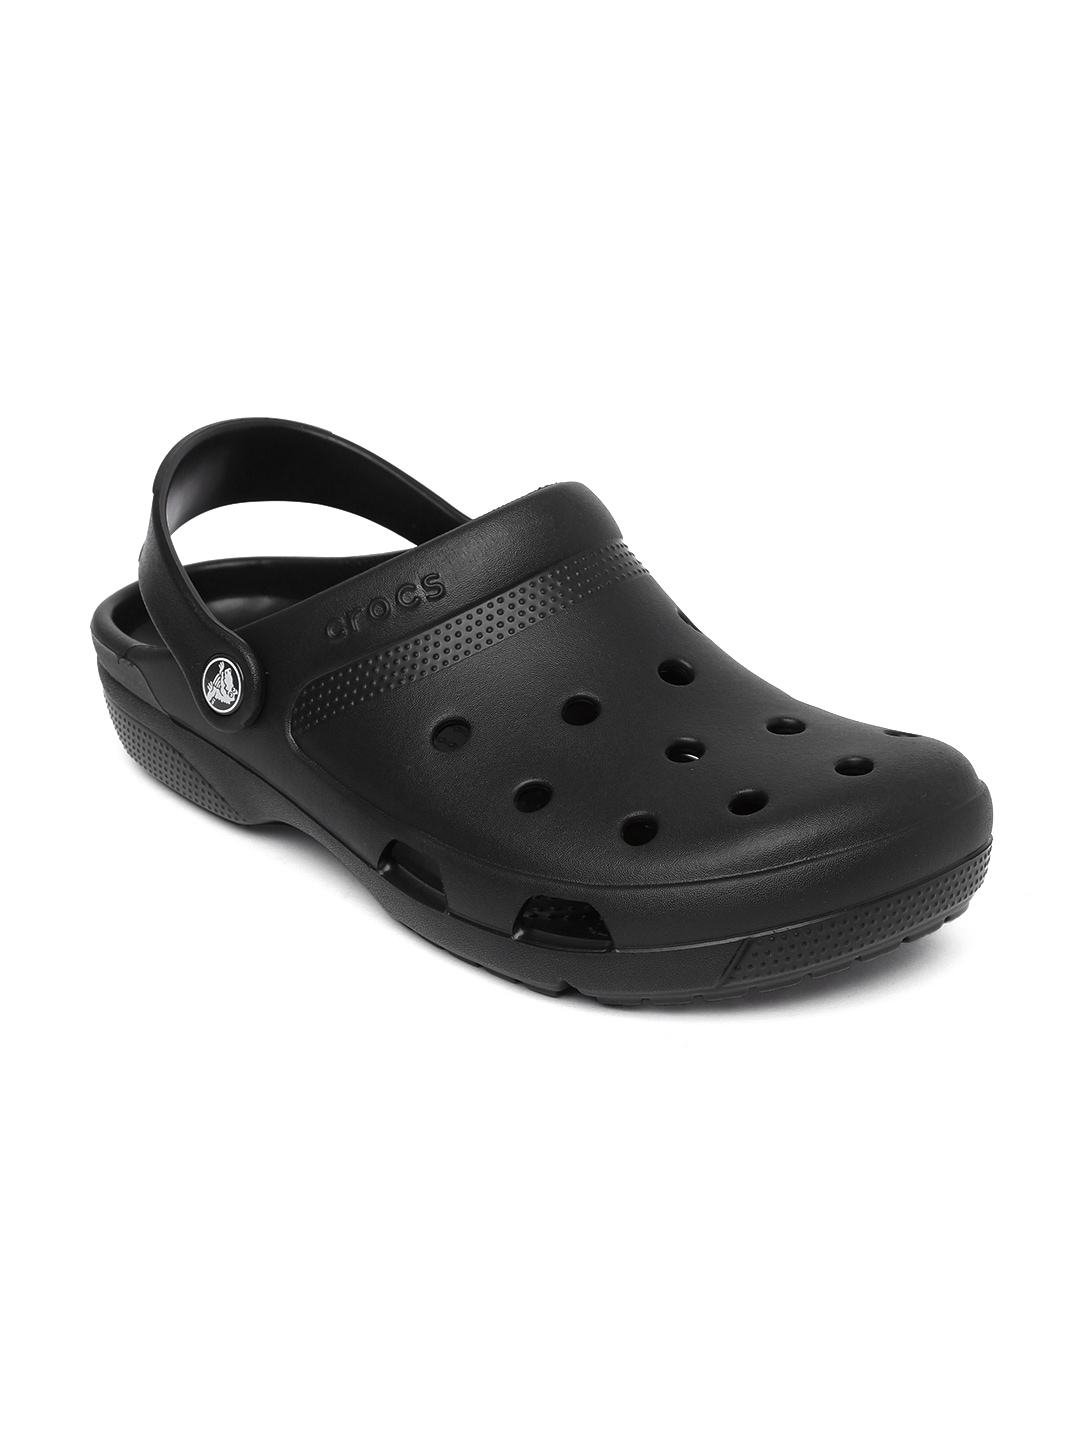 cf1d9fda94cb Crocs Shoes Online - Buy Crocs Flip Flops   Sandals Online in India - Myntra